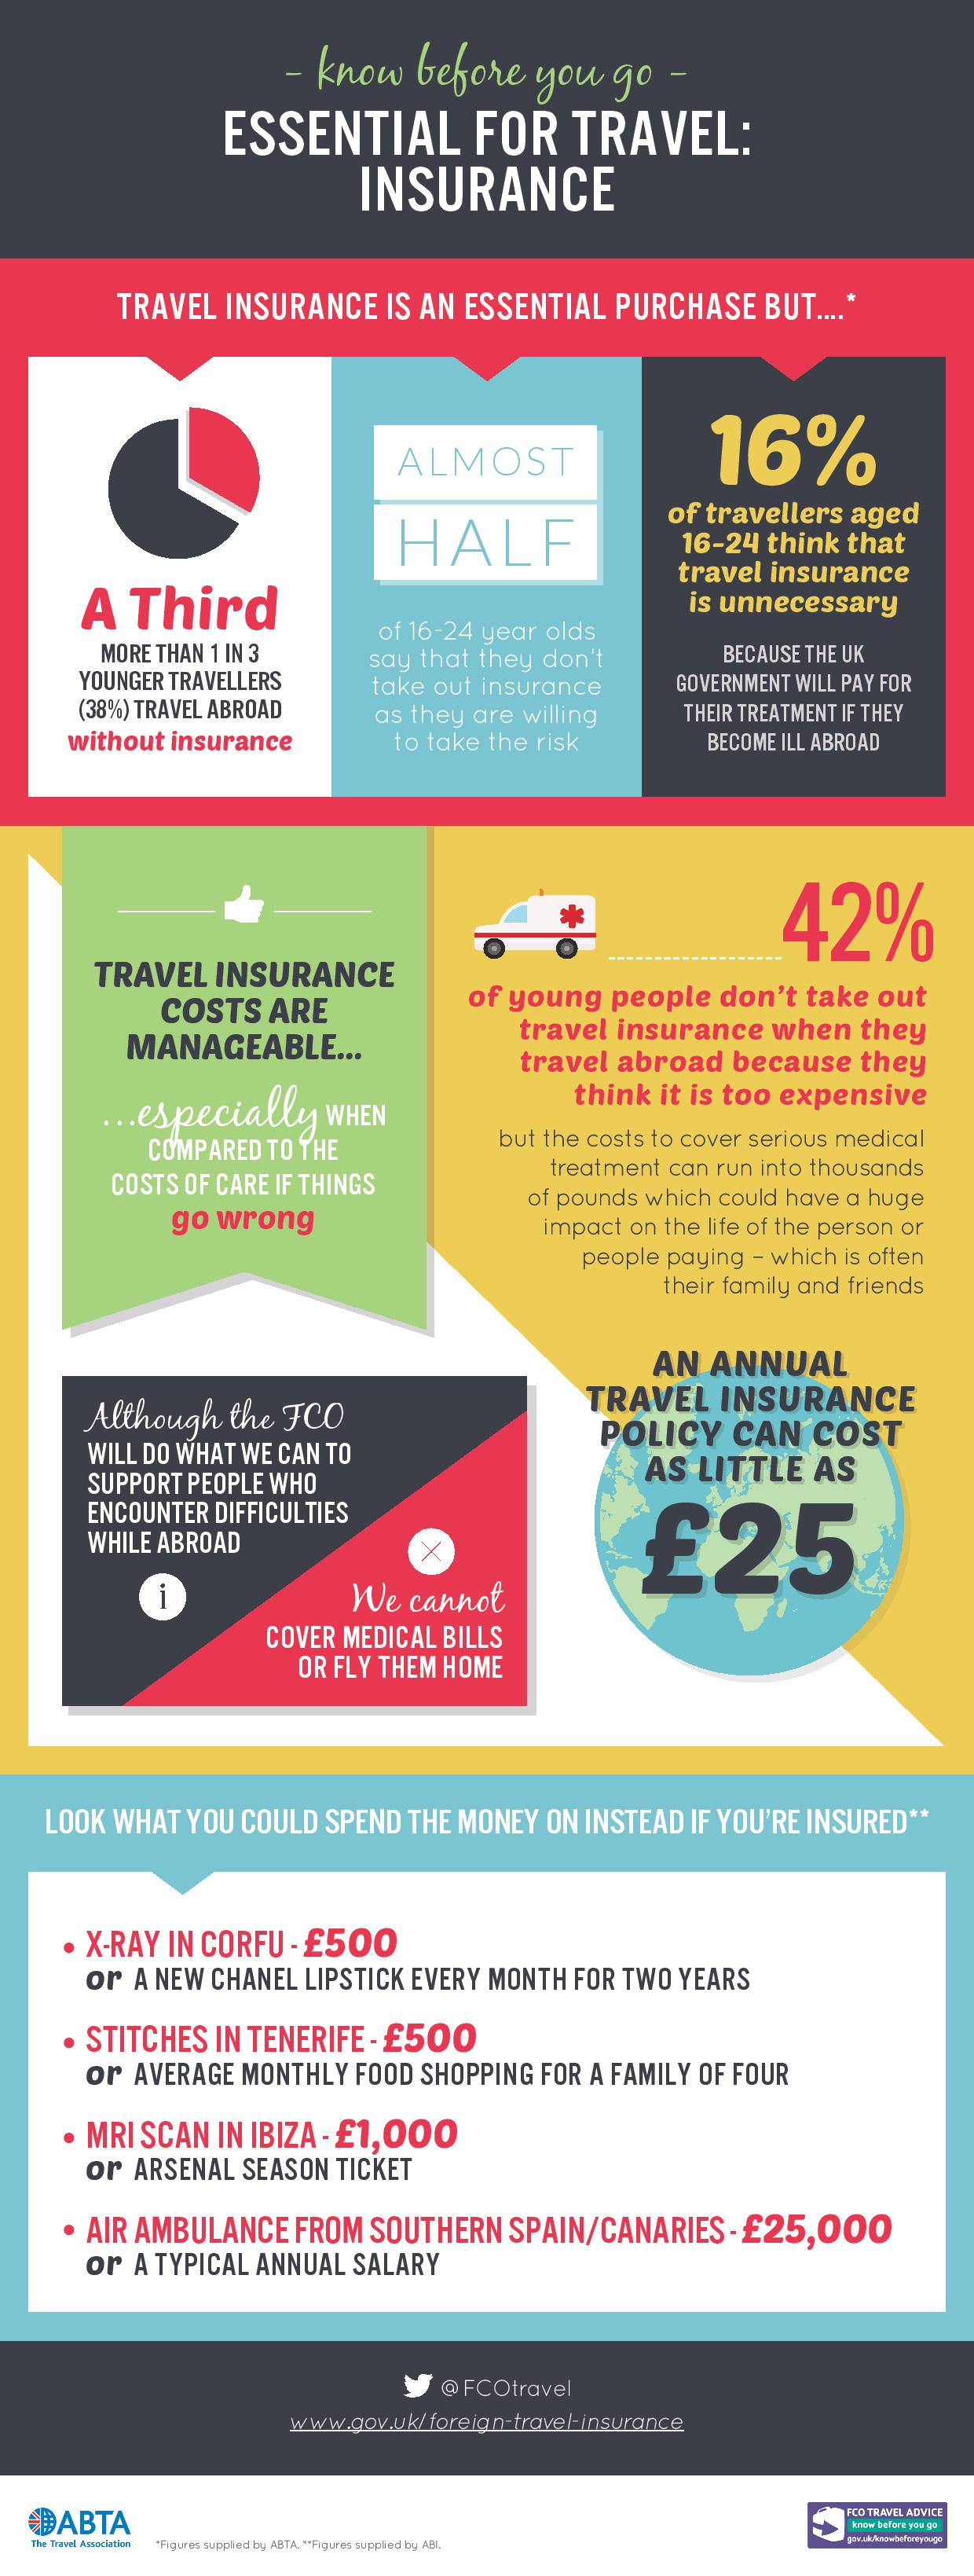 FCO_Insurance_Infographic_Final7-page-001